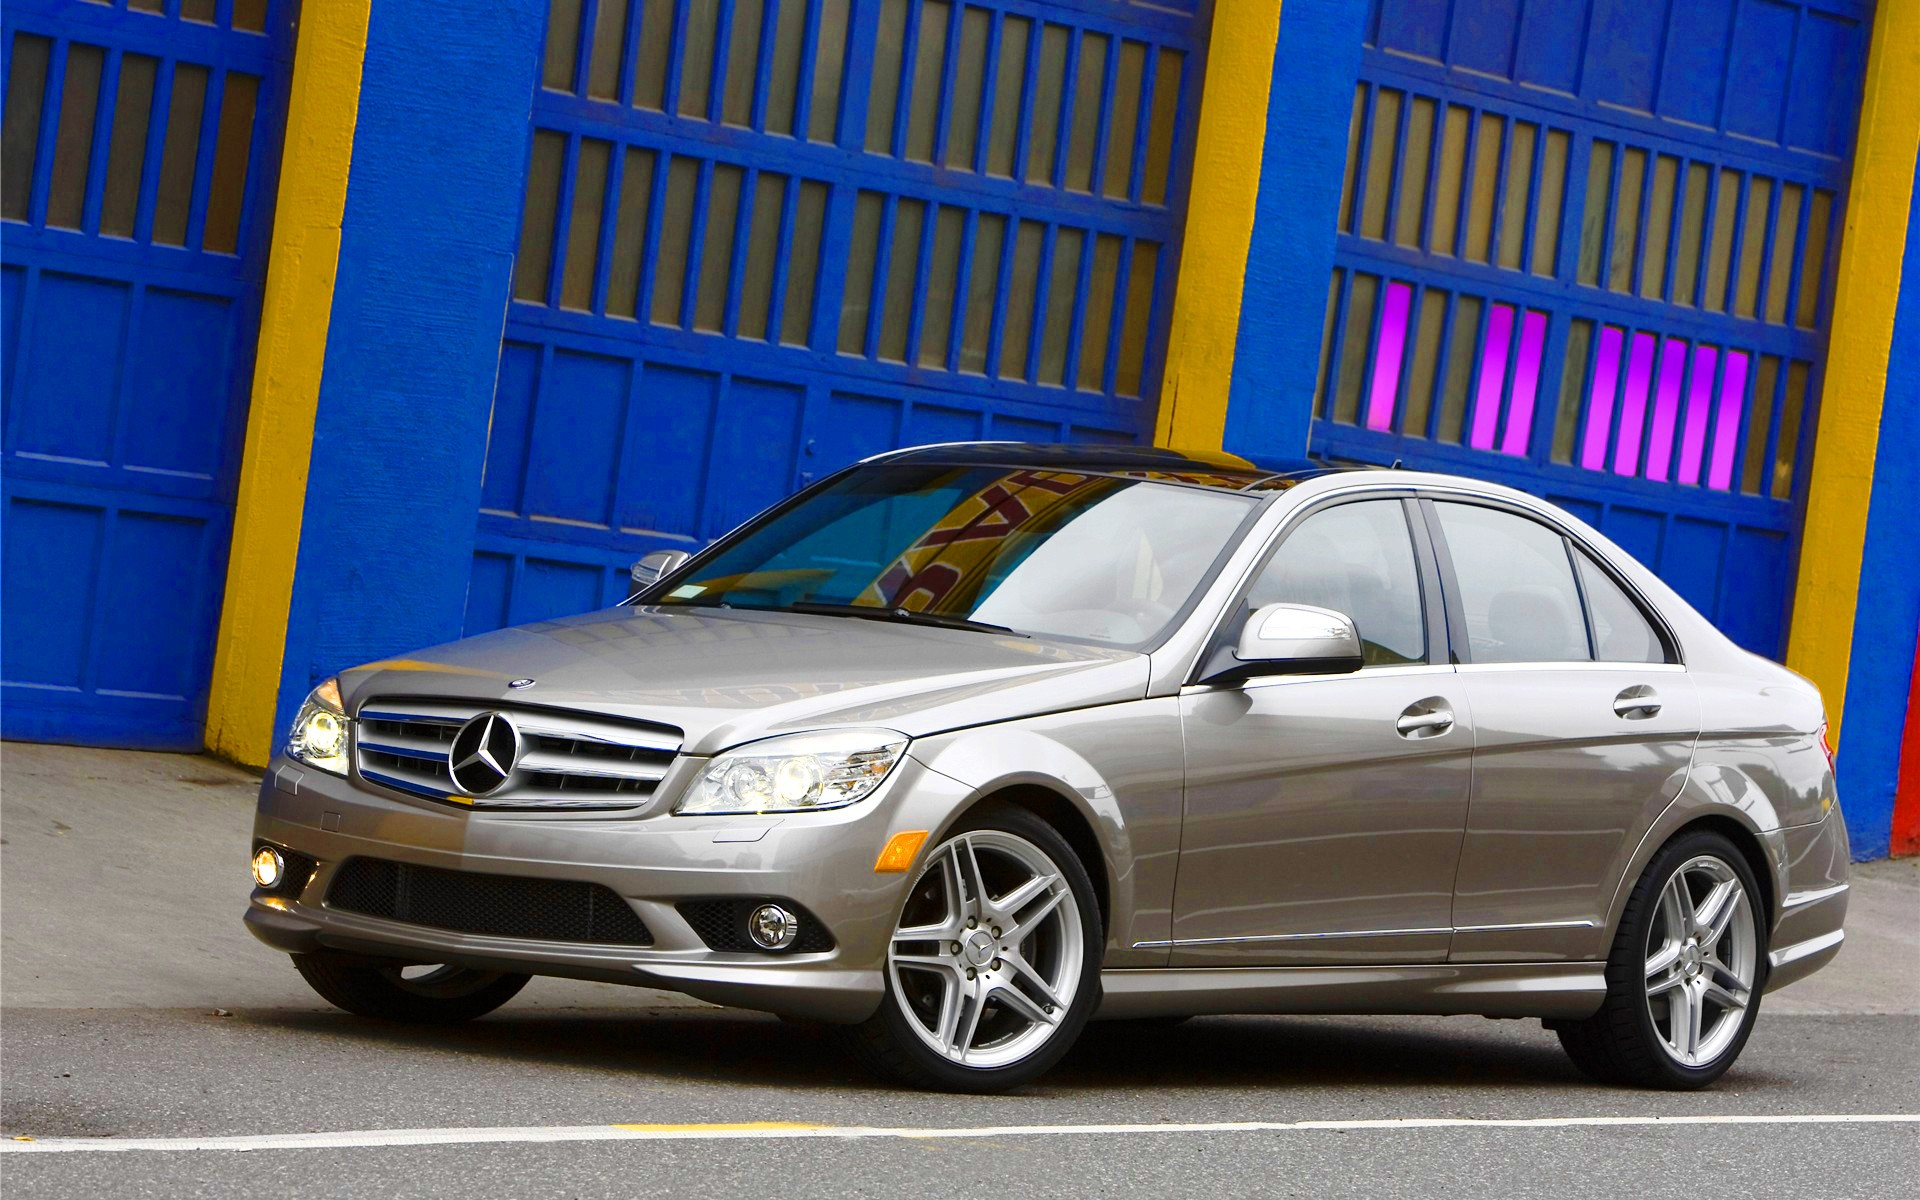 2010 mercedes benz c class information and photos momentcar. Black Bedroom Furniture Sets. Home Design Ideas